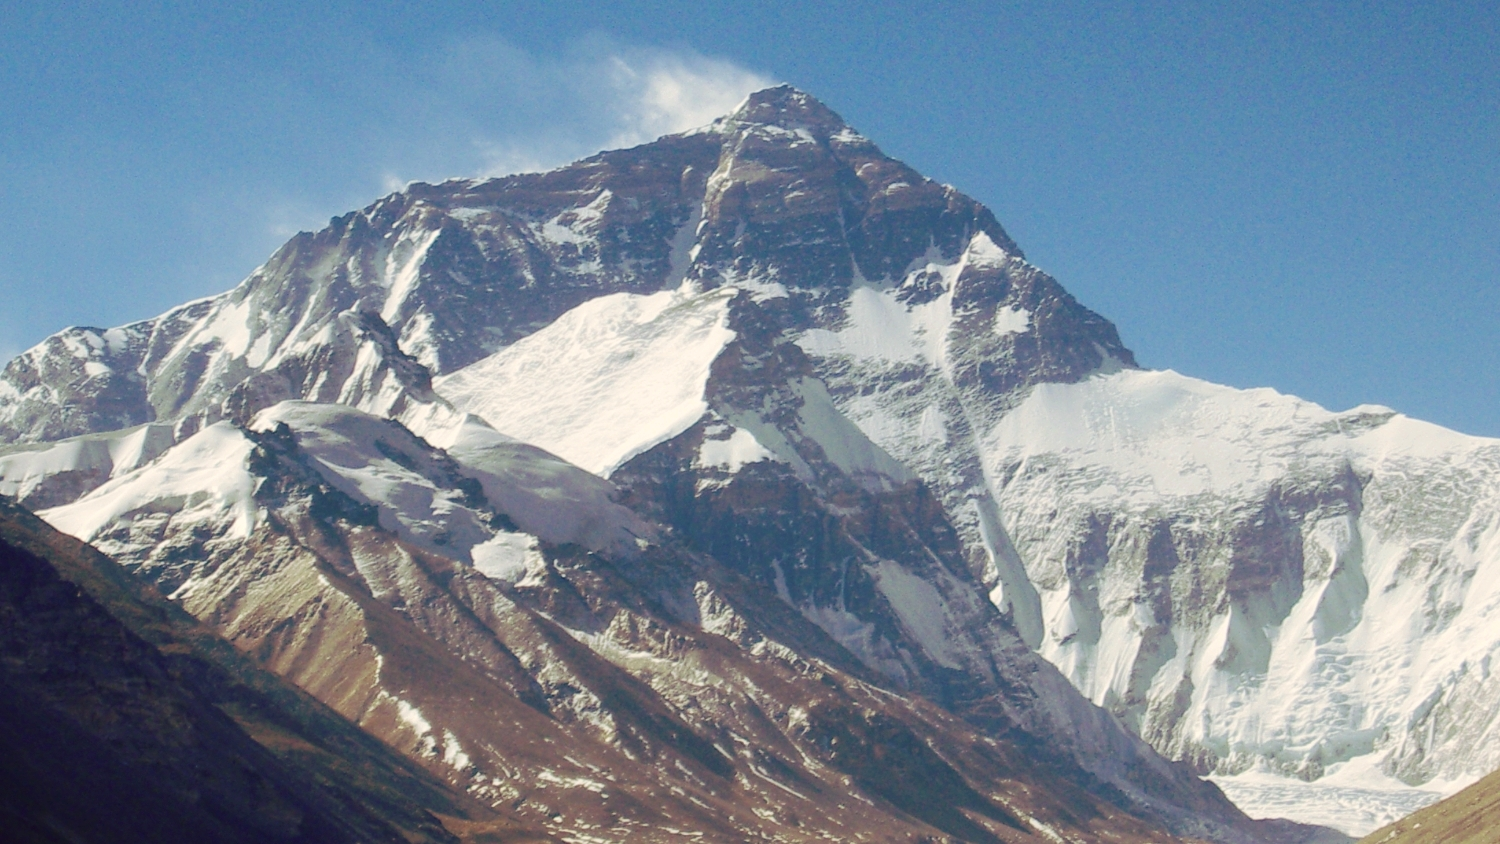 Everest from Everest Base Camp